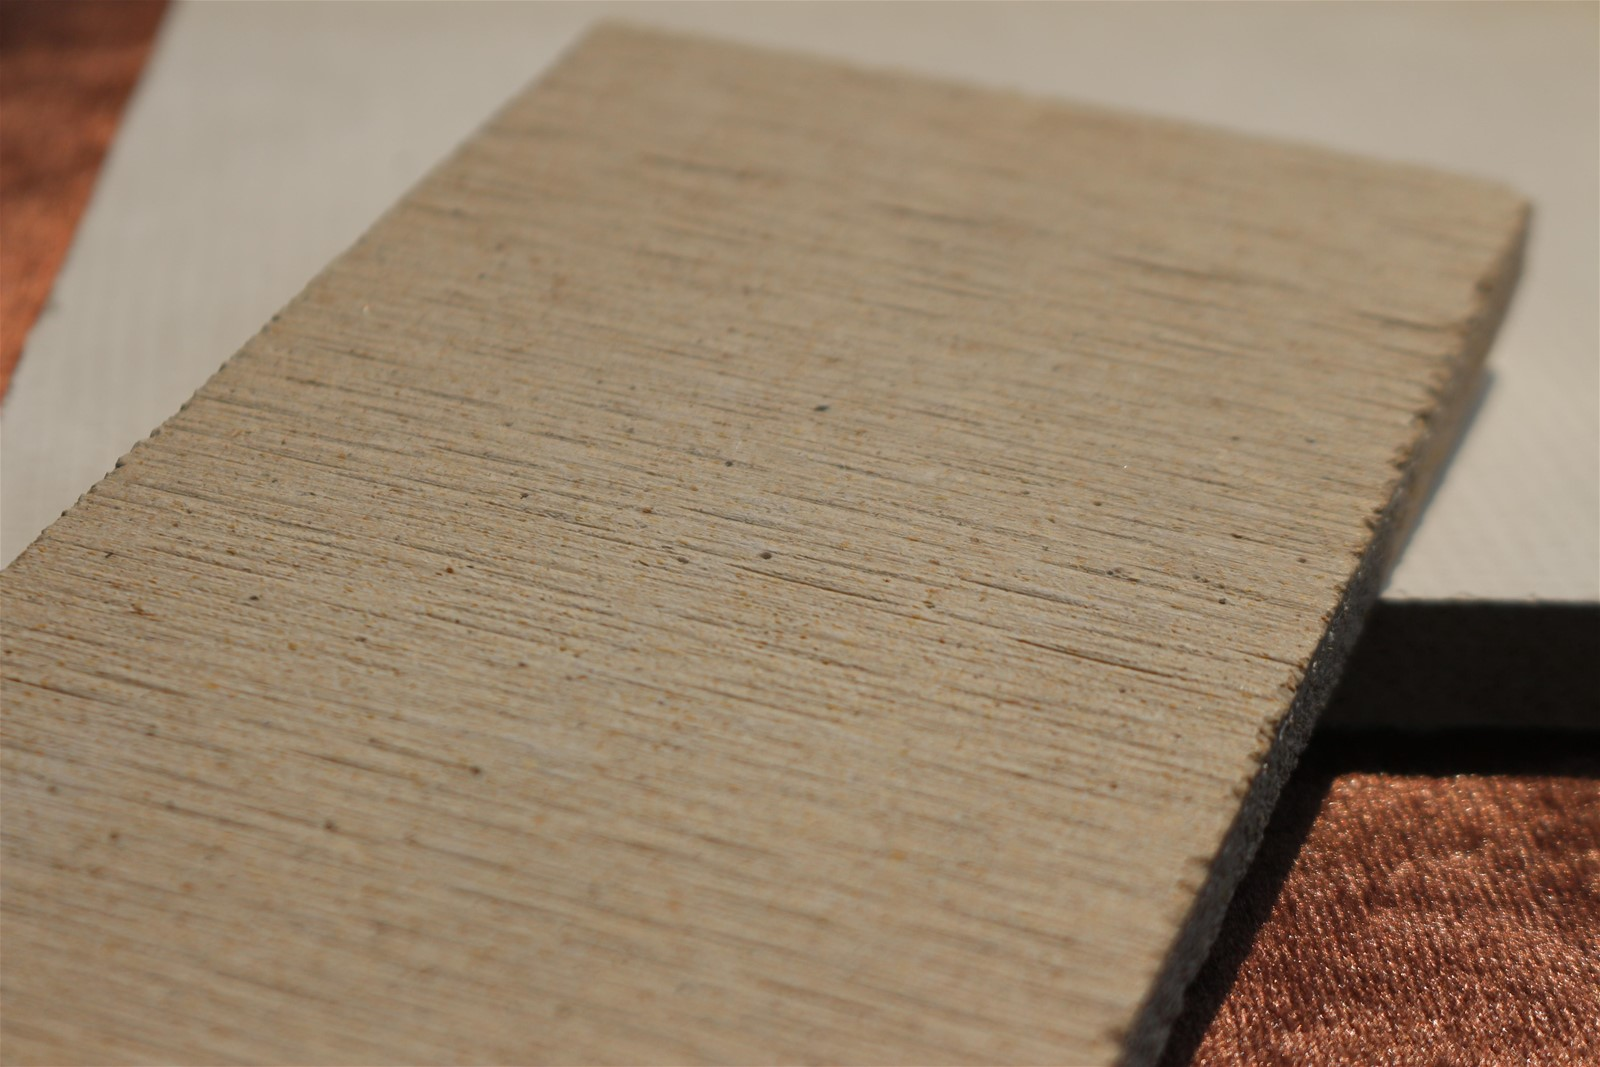 Magnesium Oxide Board Product : Magnesium oxide board for floor panel purchasing souring agent